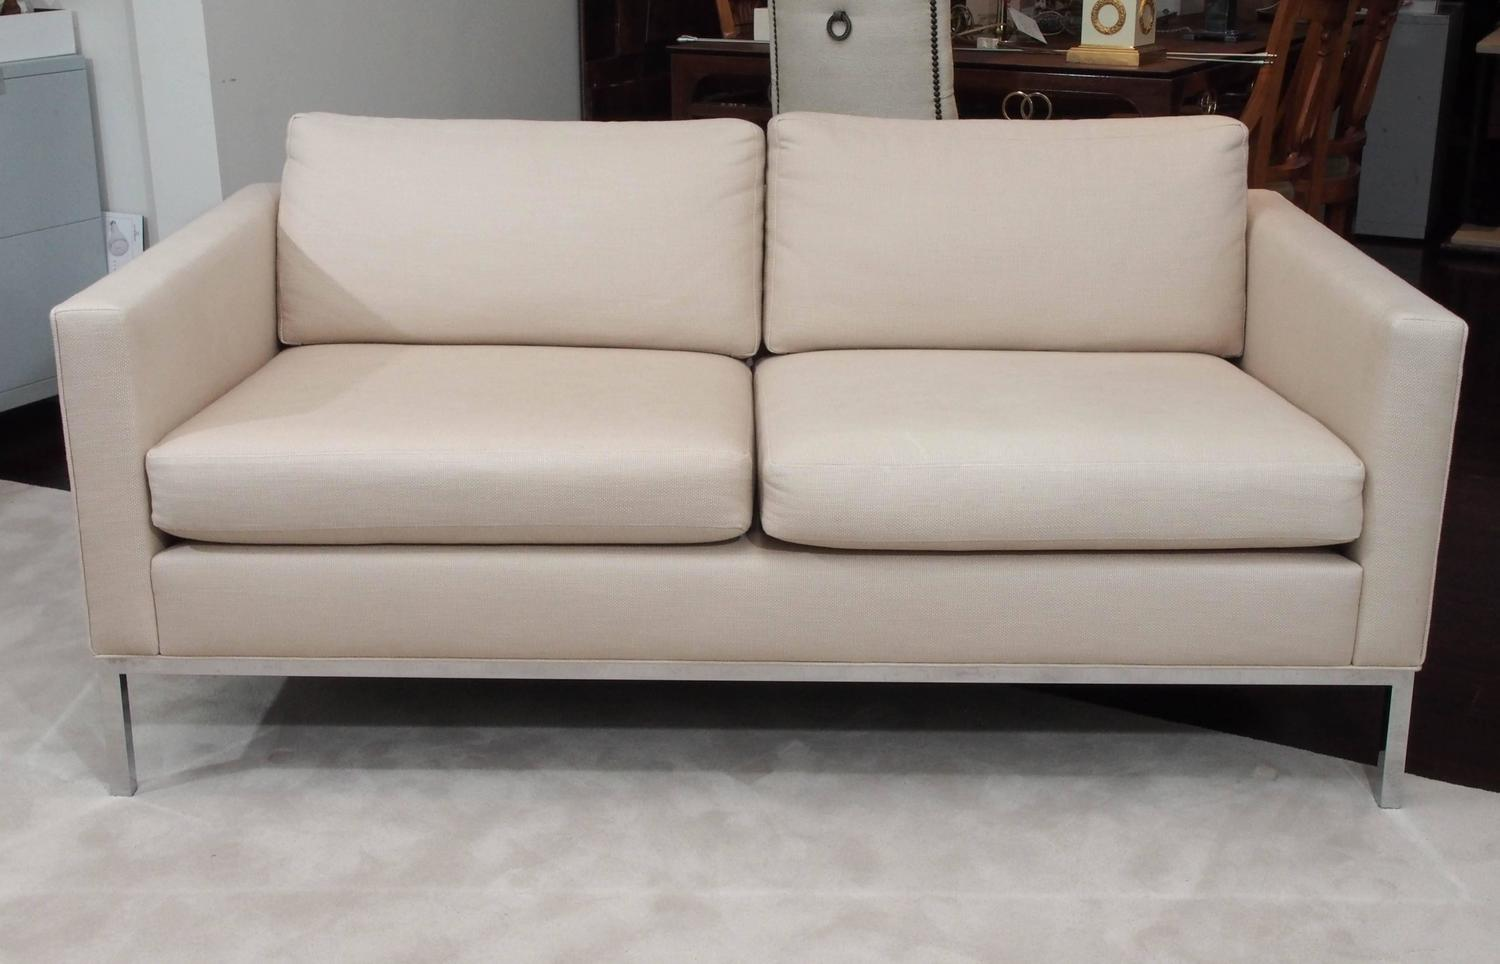 Knoll Style Two Seat Upholstered Sofa For Sale at 1stdibs